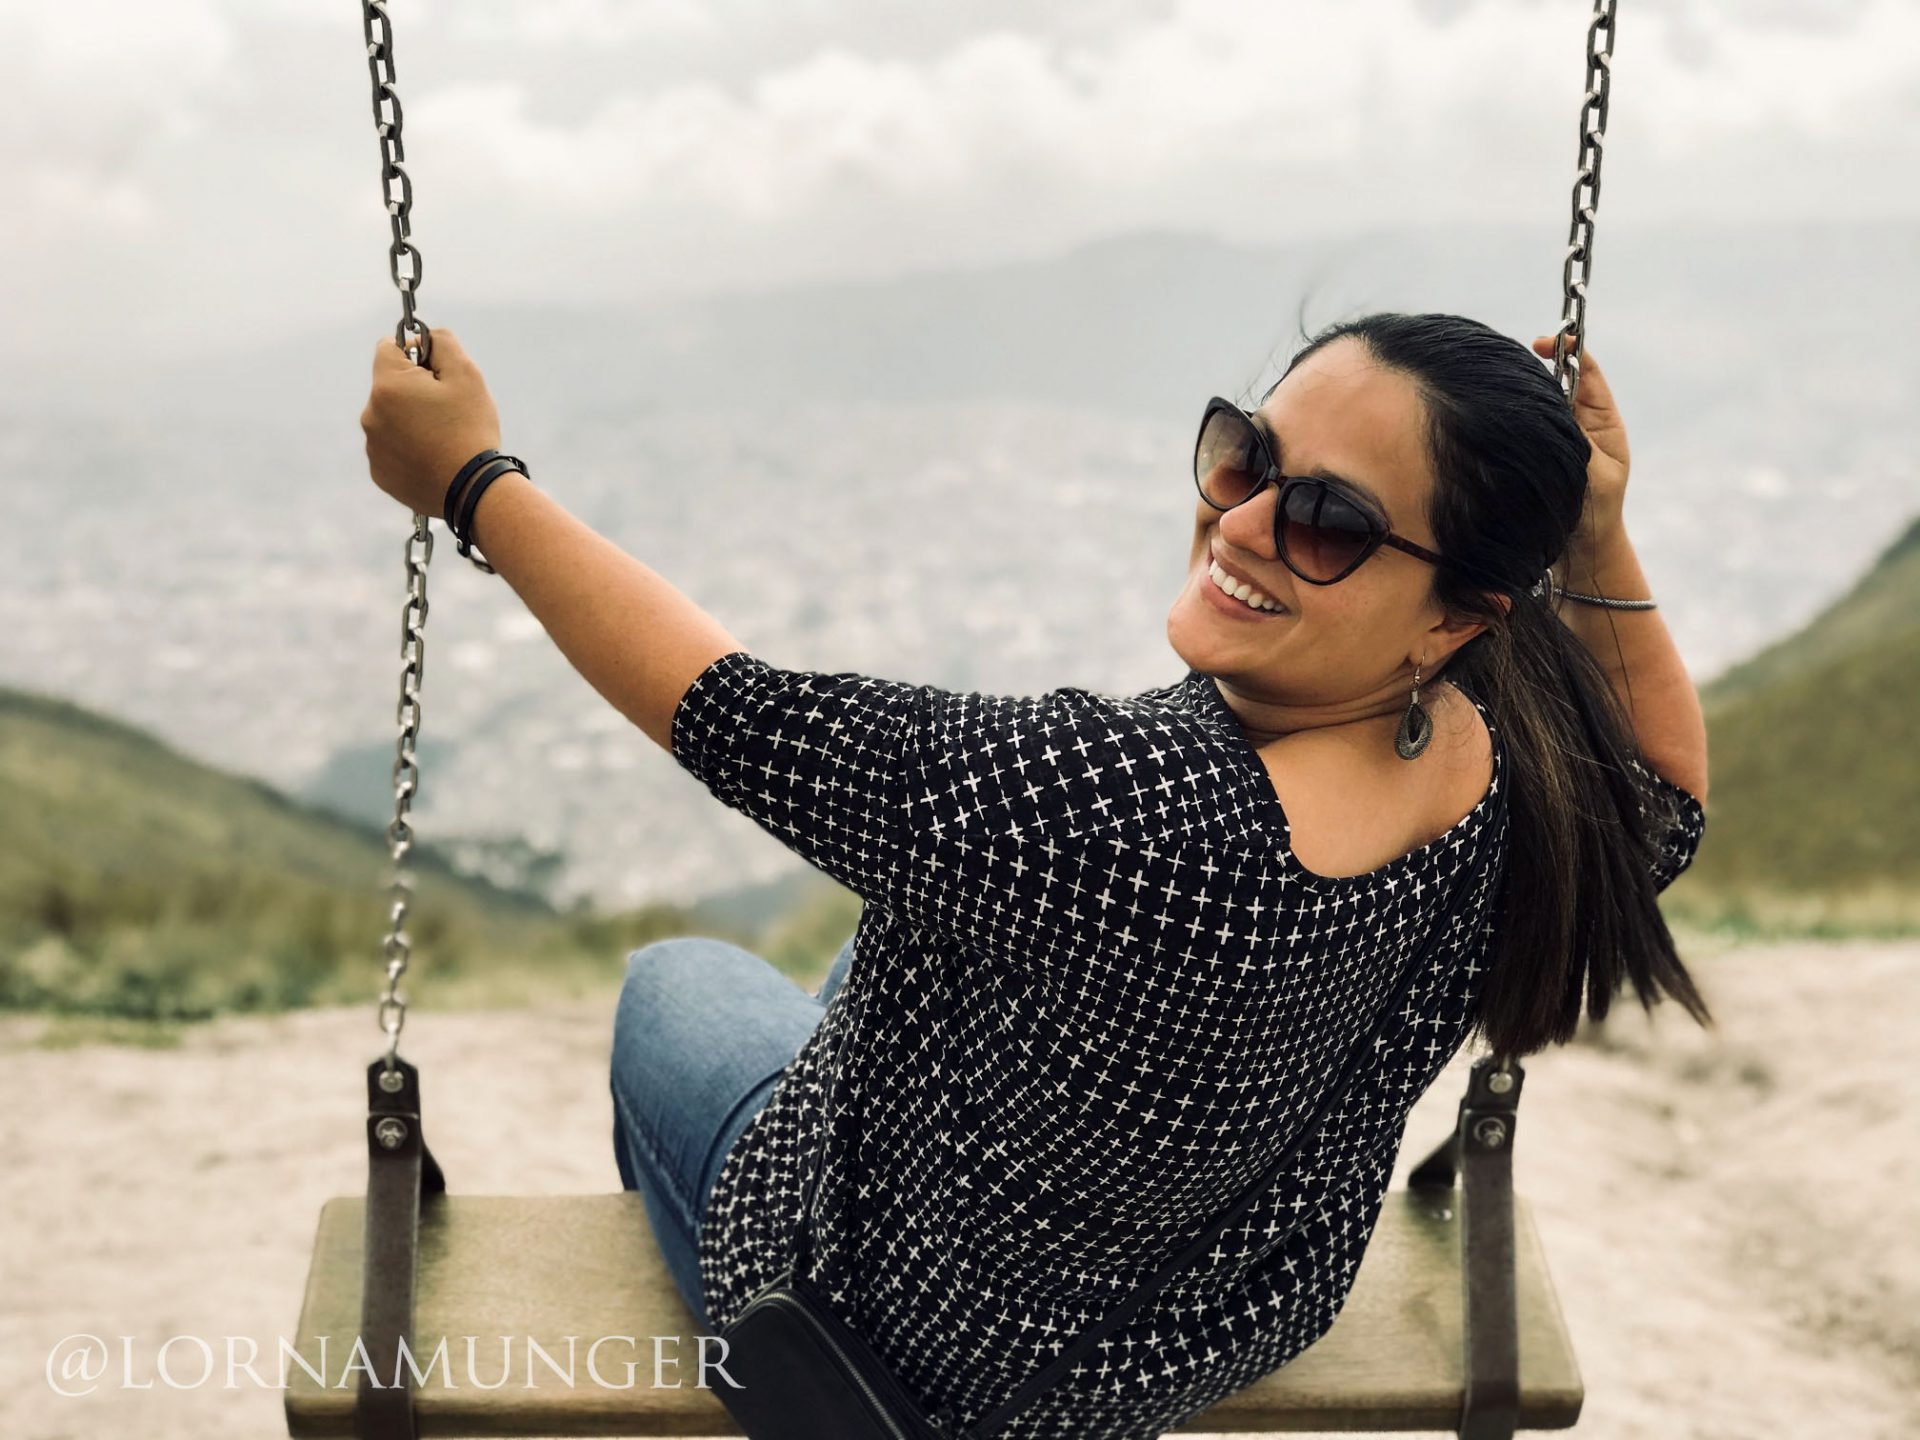 Lady Smiles on Swing in Ecuador | prodigalpieces.com